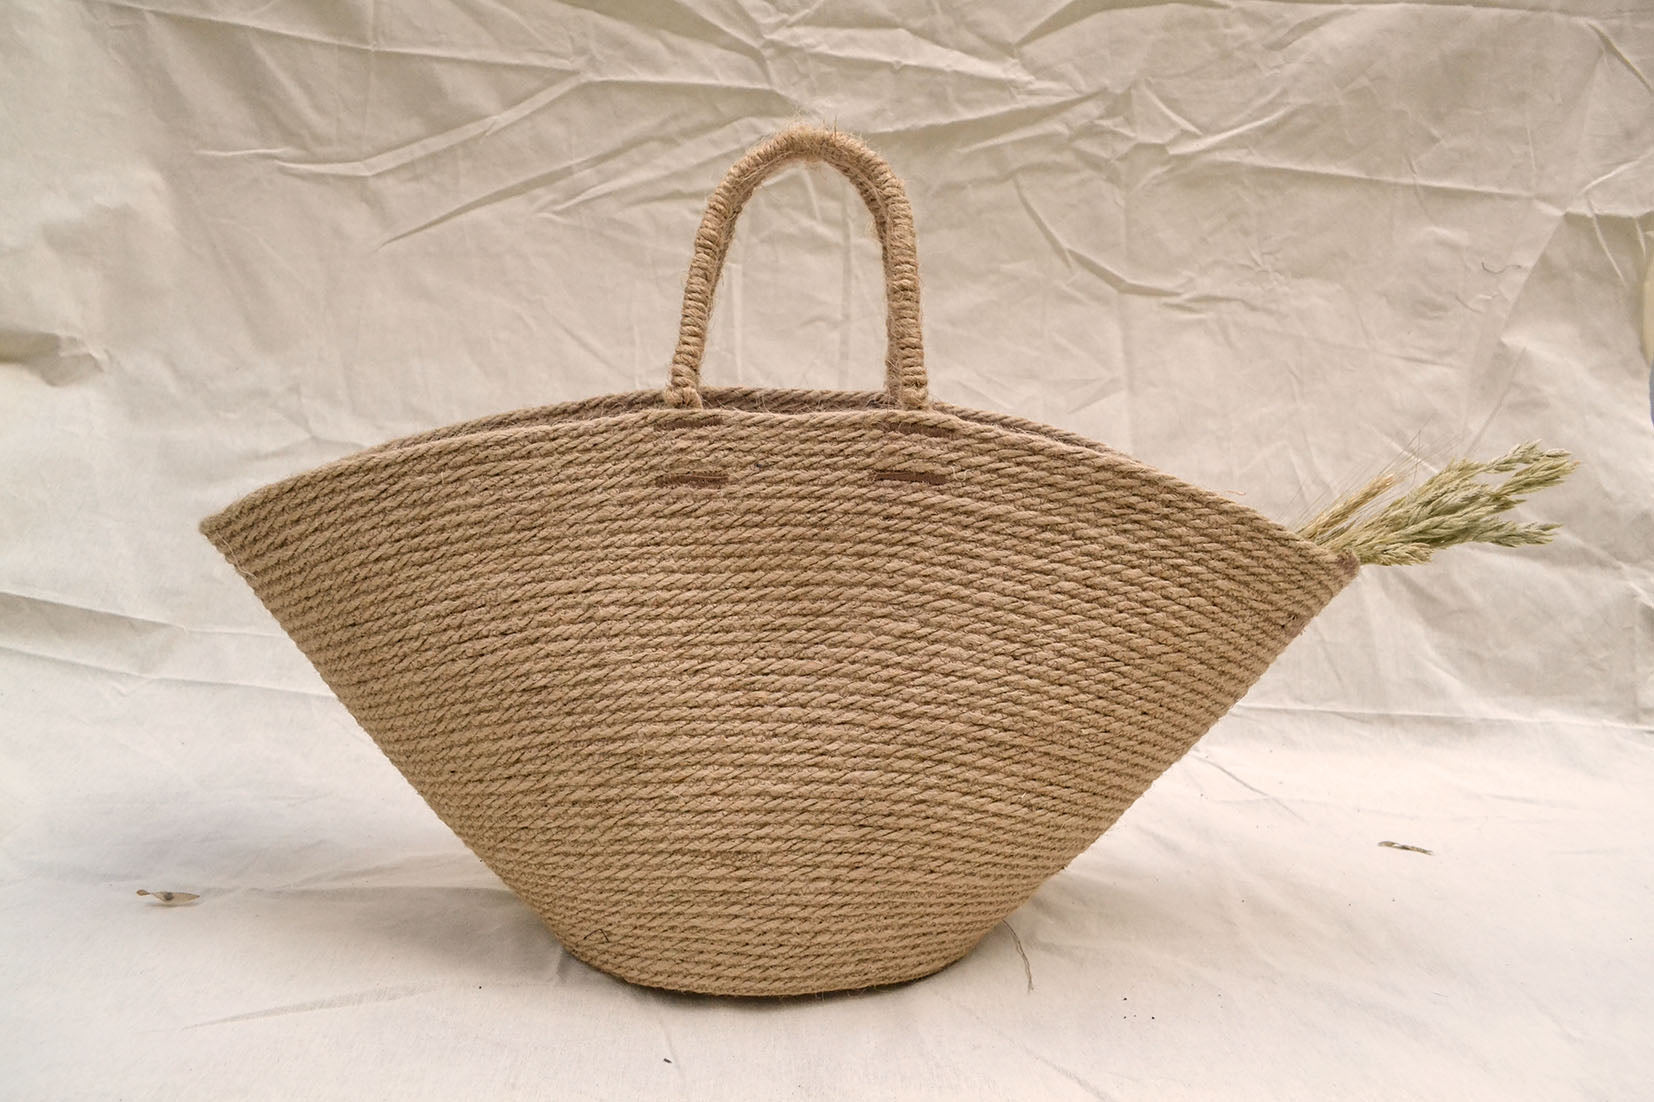 full image of the jute bag